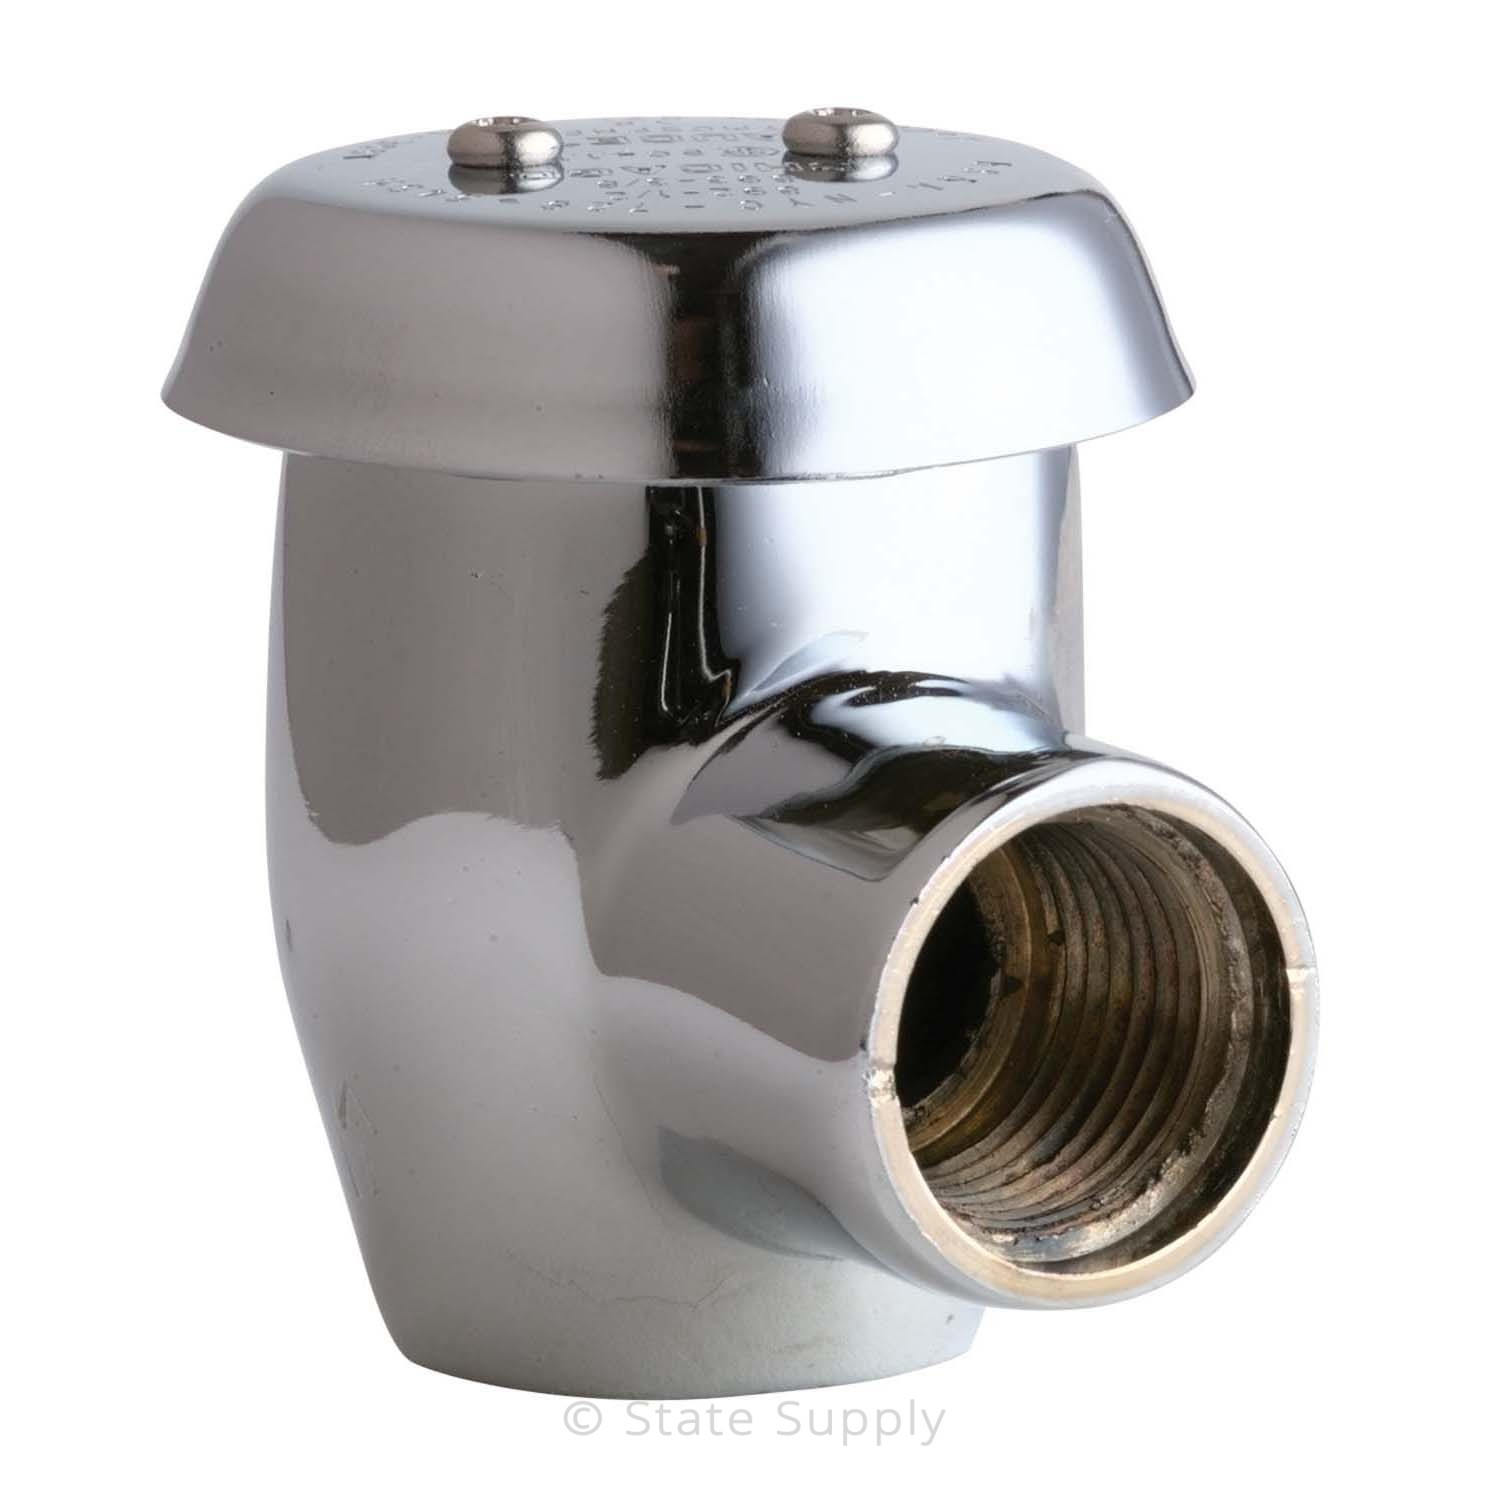 chicago faucets 892 abcp 1 2 angle pattern vacuum breaker